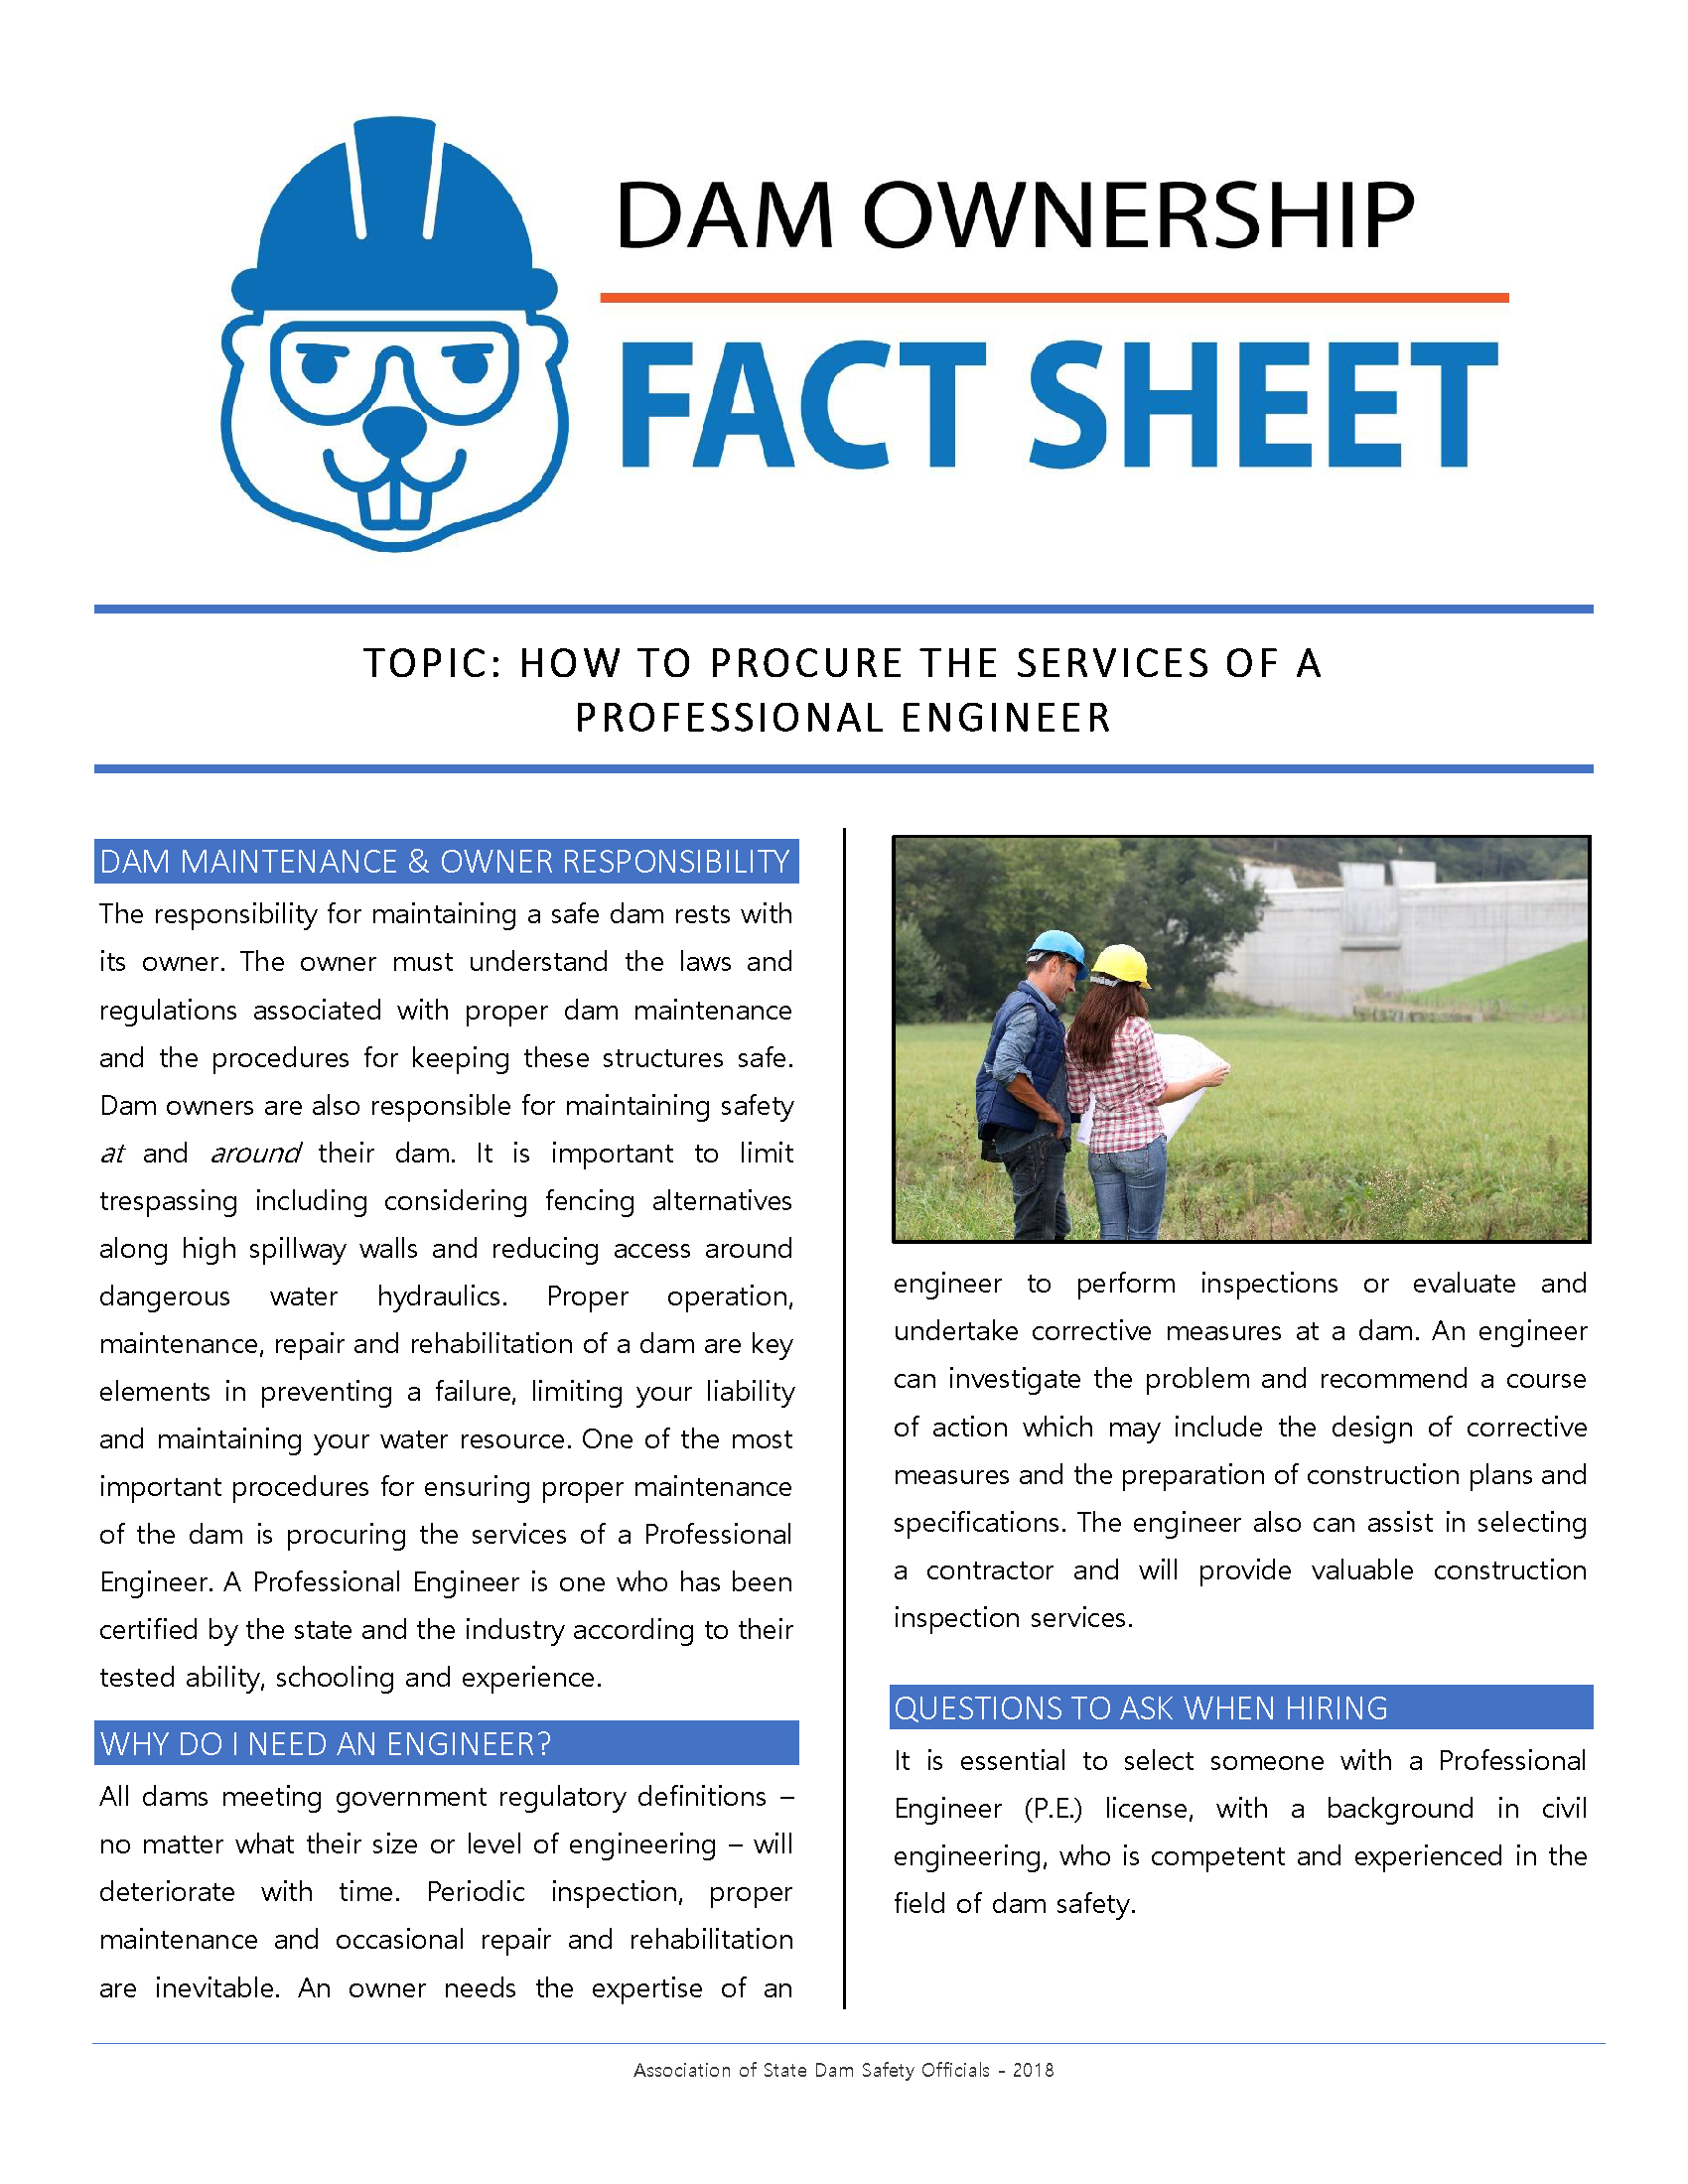 How to Procure the Services of an Engineer Fact Sheet 2018_Page_1.png